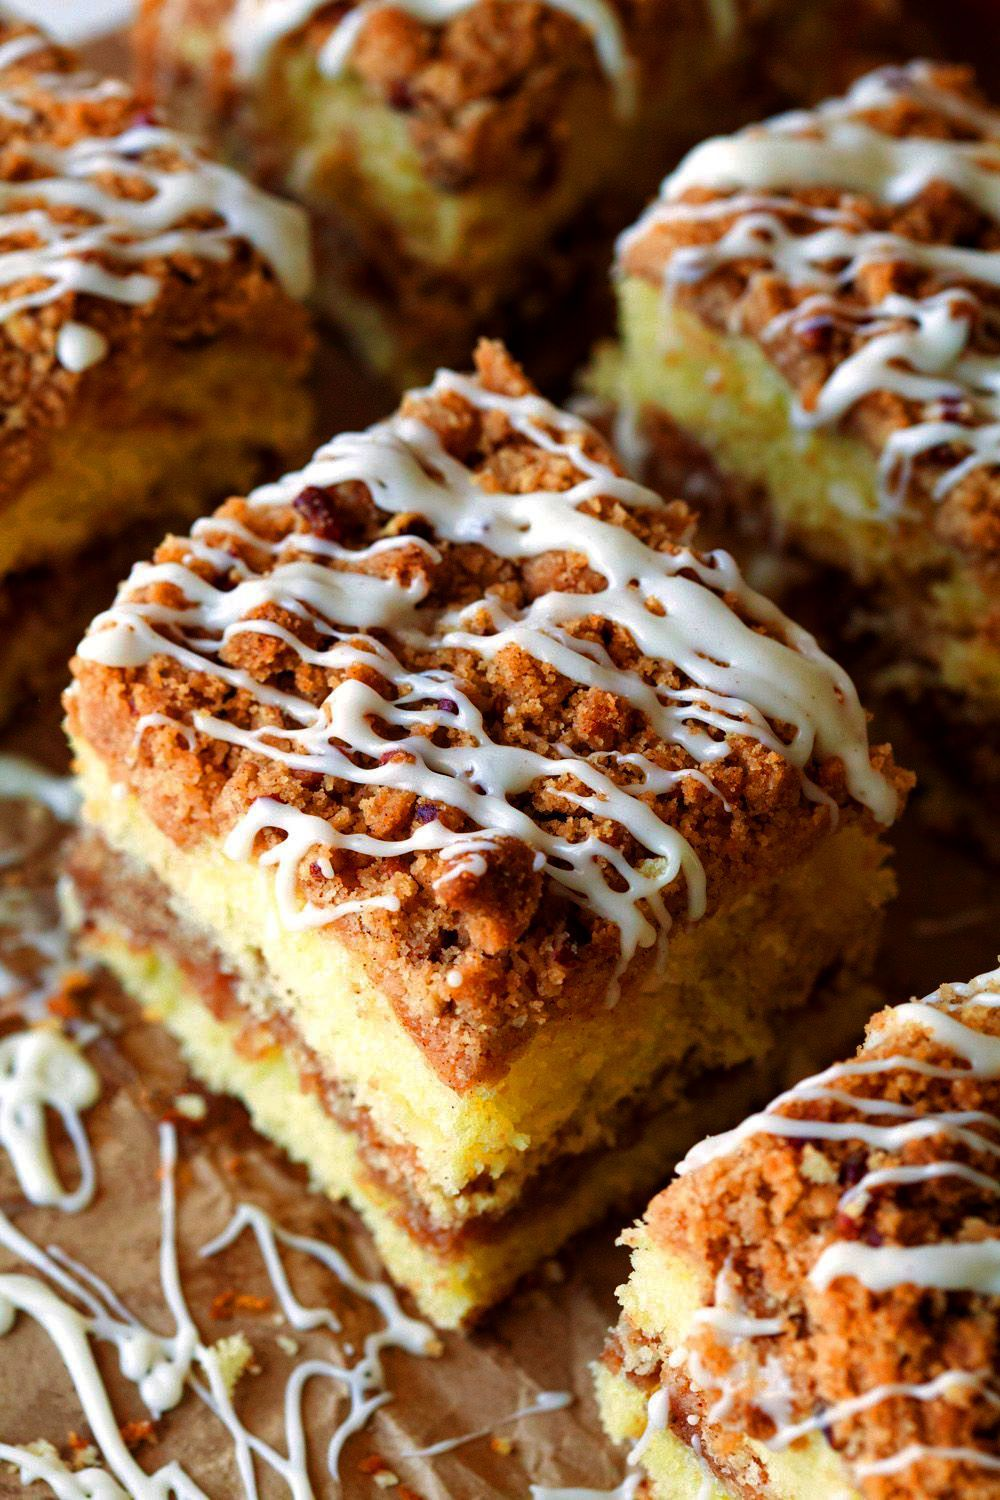 Coffee Near Me Kansas City Though Coffee Table Near Me Against Coffee Grinder Guide As Coffee Table Mid Centur Coffee Cake Recipes Cinnamon Crumb Cake Desserts